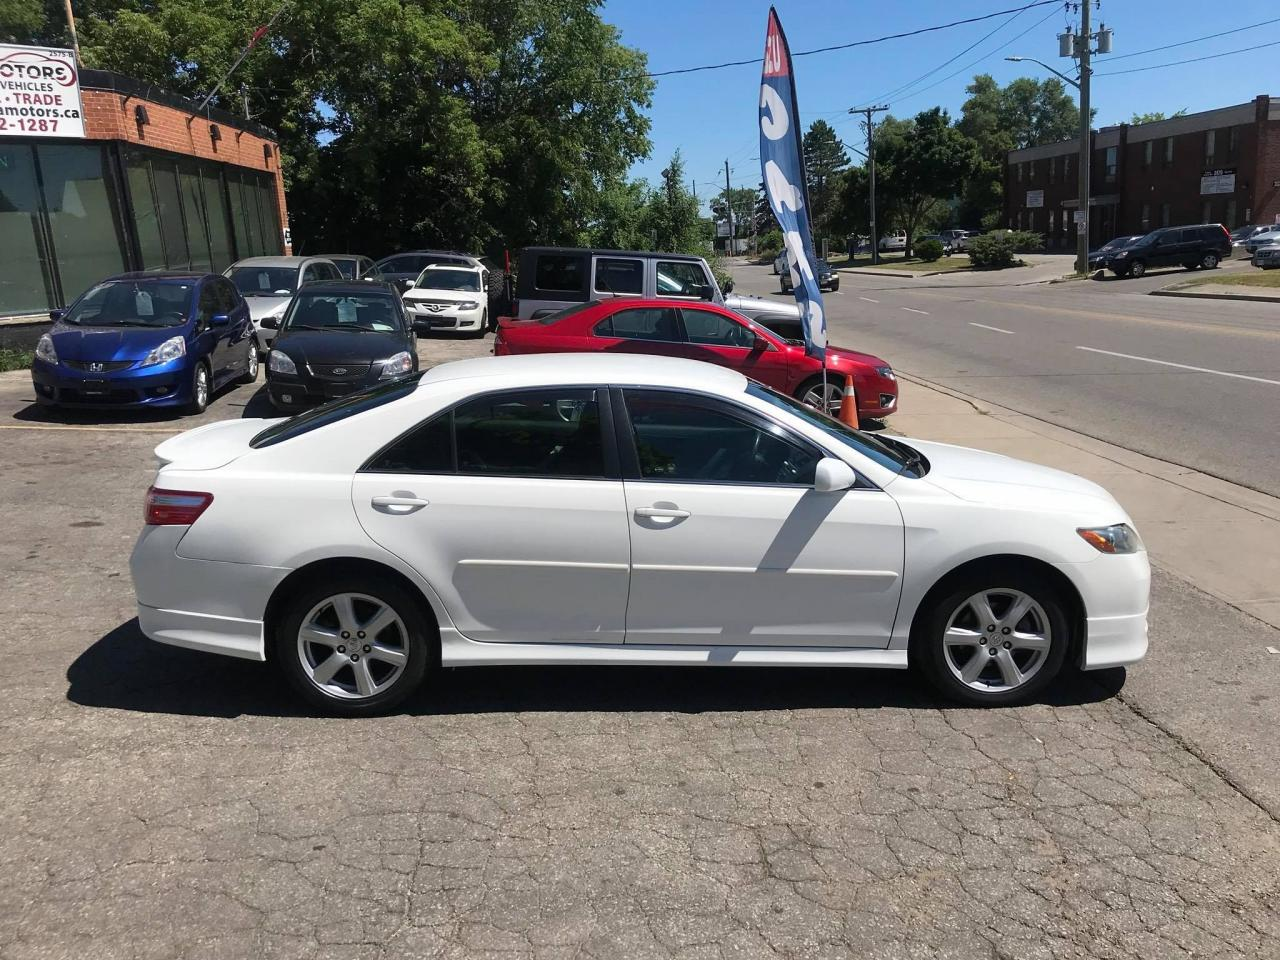 Used 2009 Toyota Camry Se No Accidents For Sale In Mississauga Fuel Filter Location On